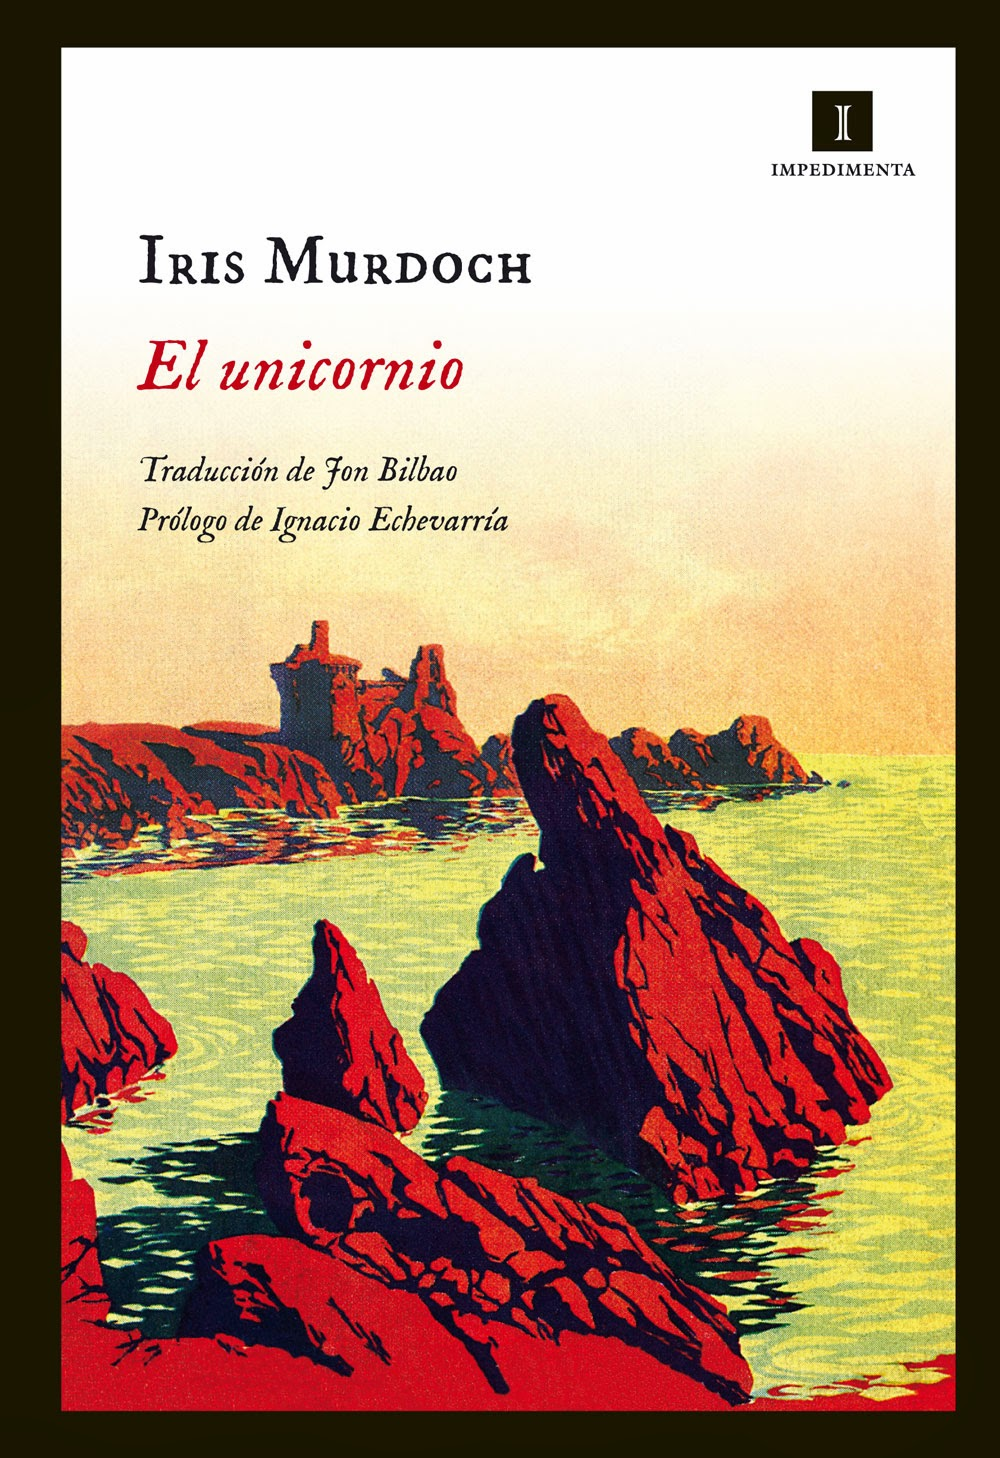 El unicornio de Iris Murdoch, editorial Impedimenta